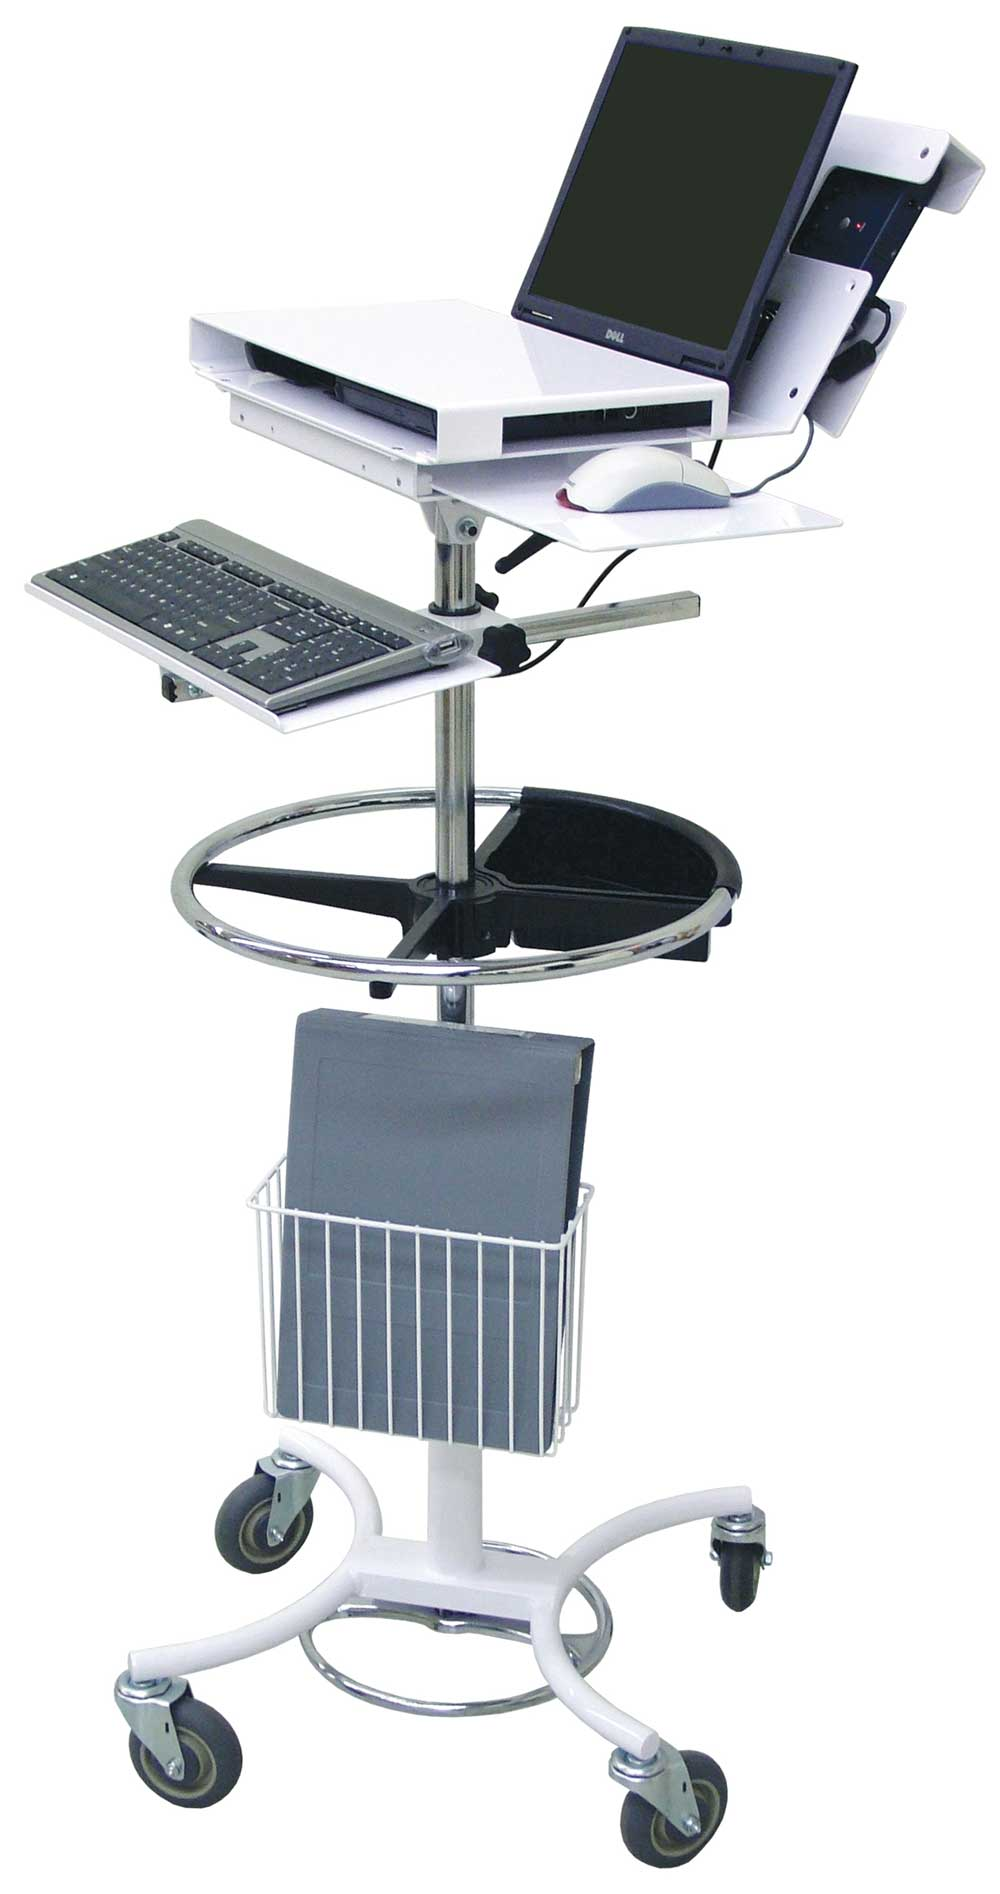 Battery-powered mobile hospital workstation stands